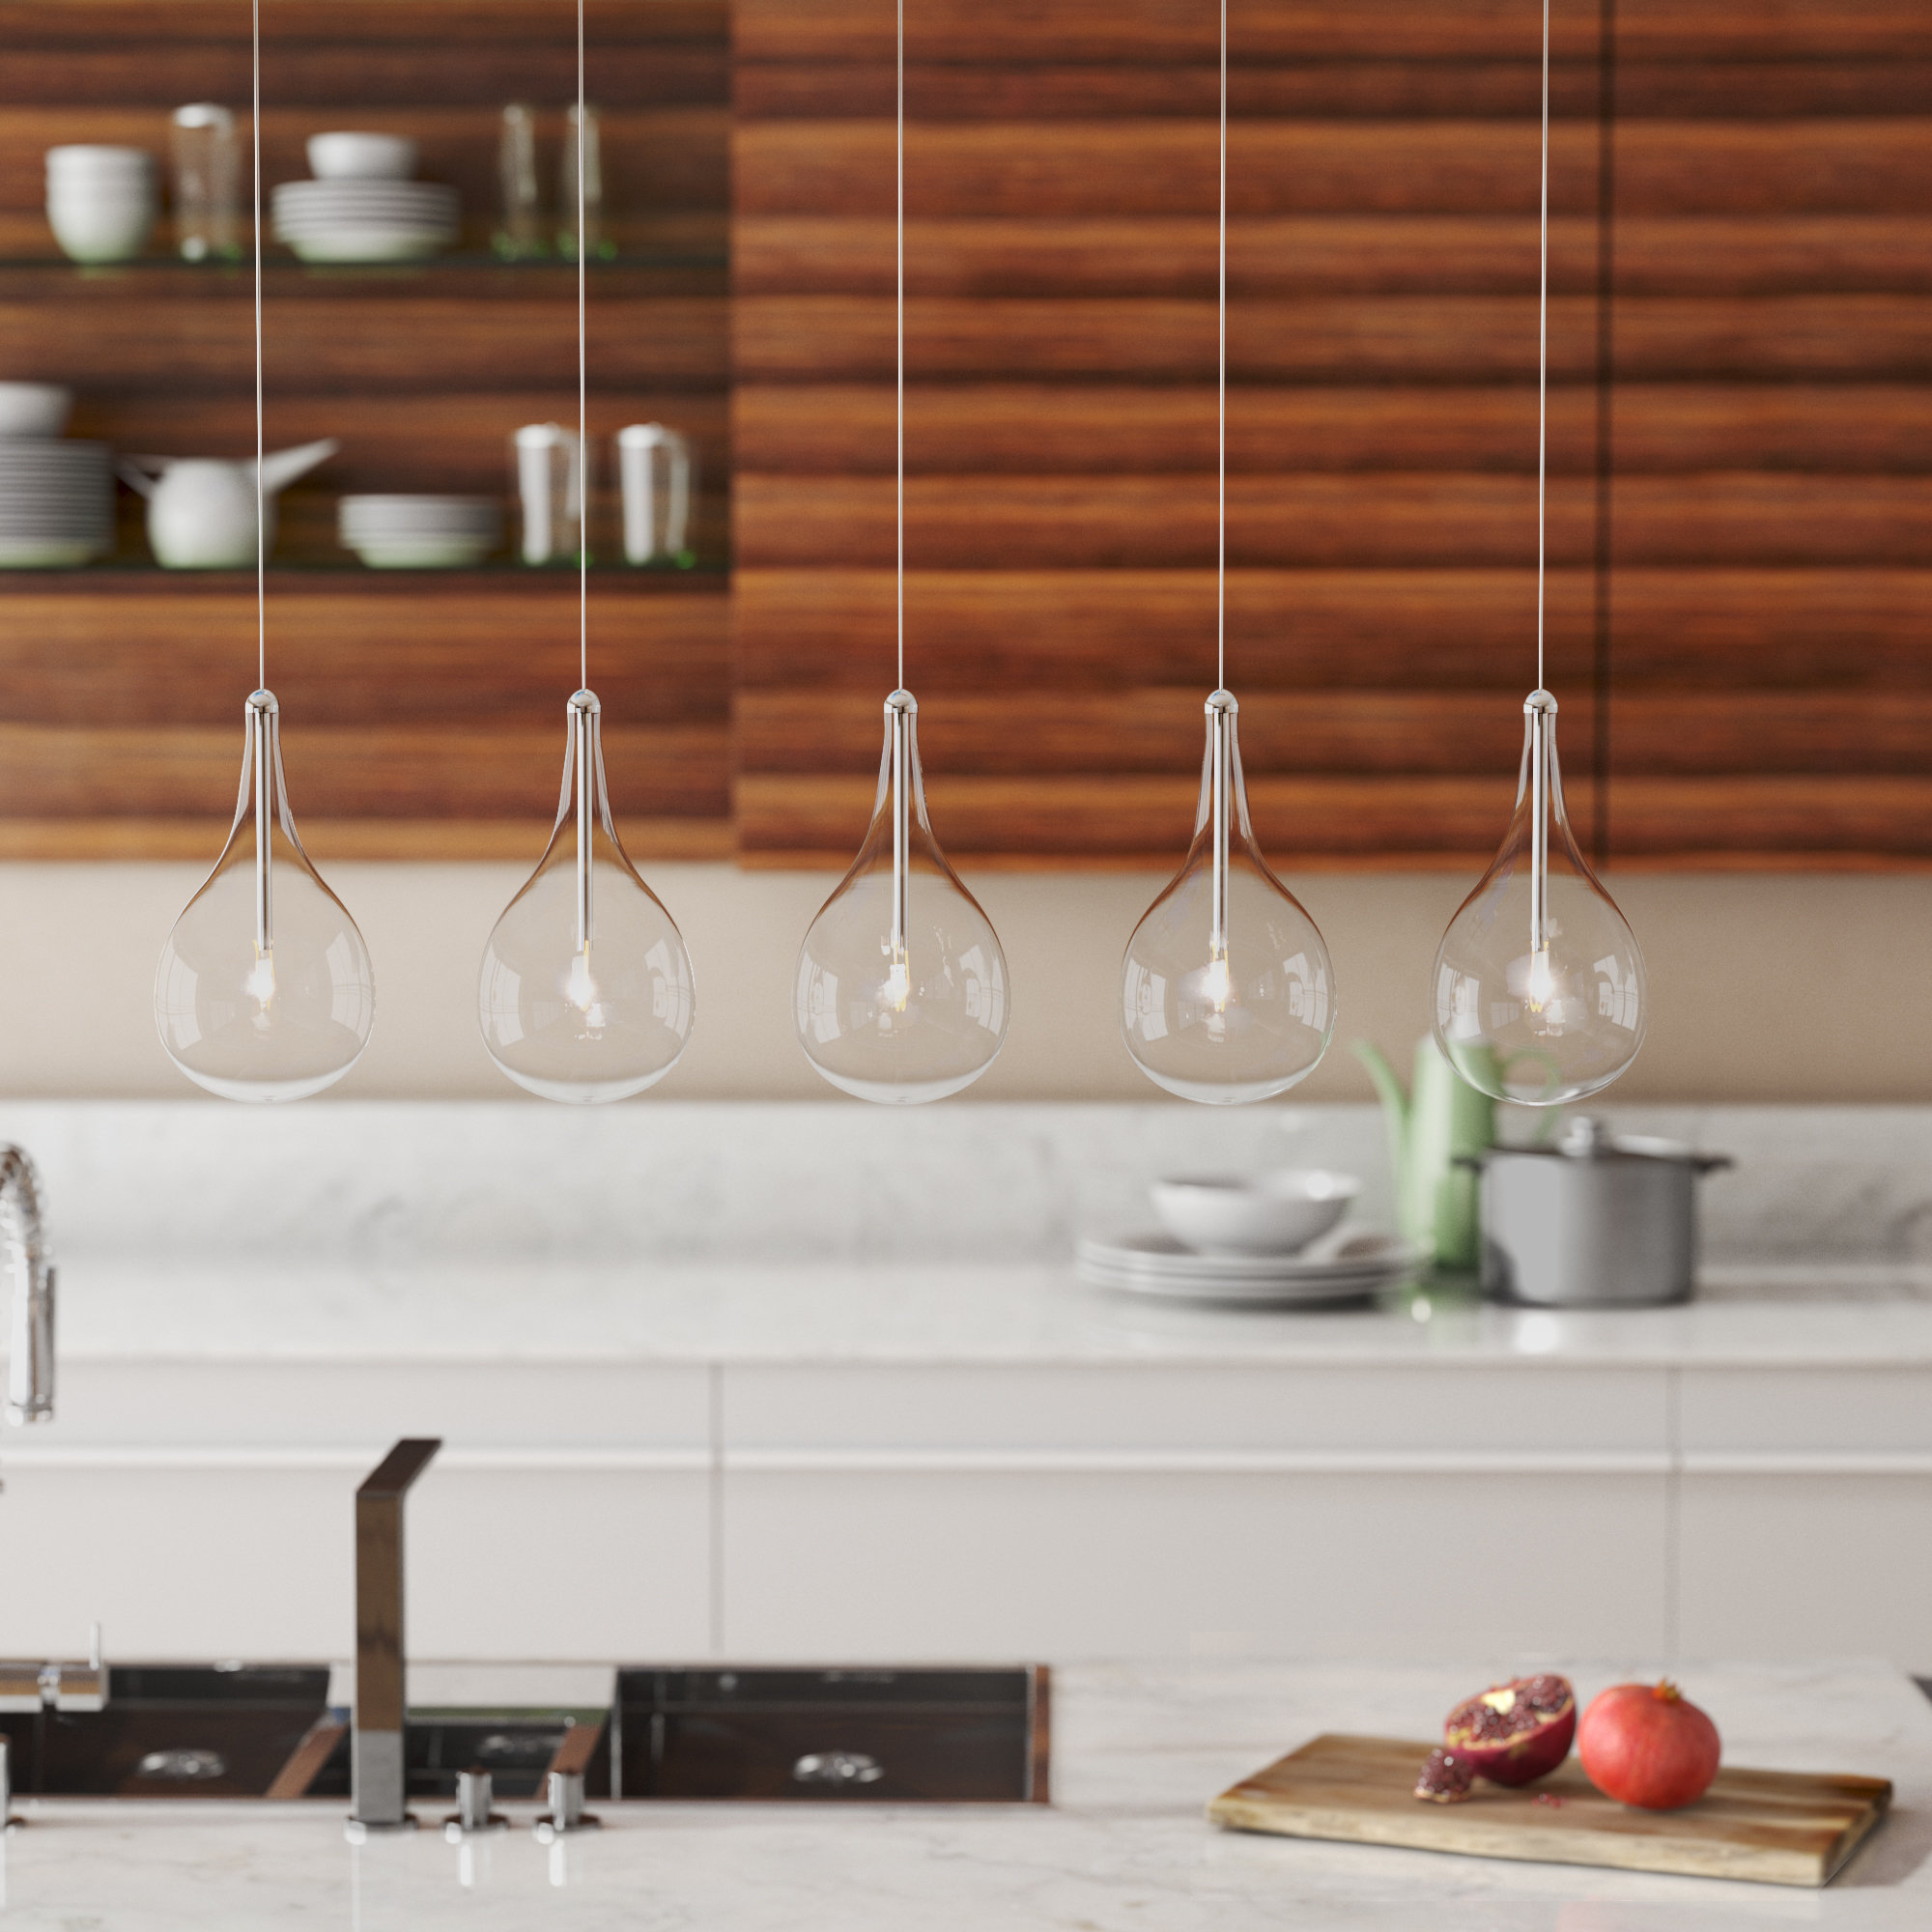 Most Up To Date Neal 9 Light Kitchen Island Teardrop Pendants Inside Neal 5 Light Kitchen Island Teardrop Pendant (View 9 of 25)